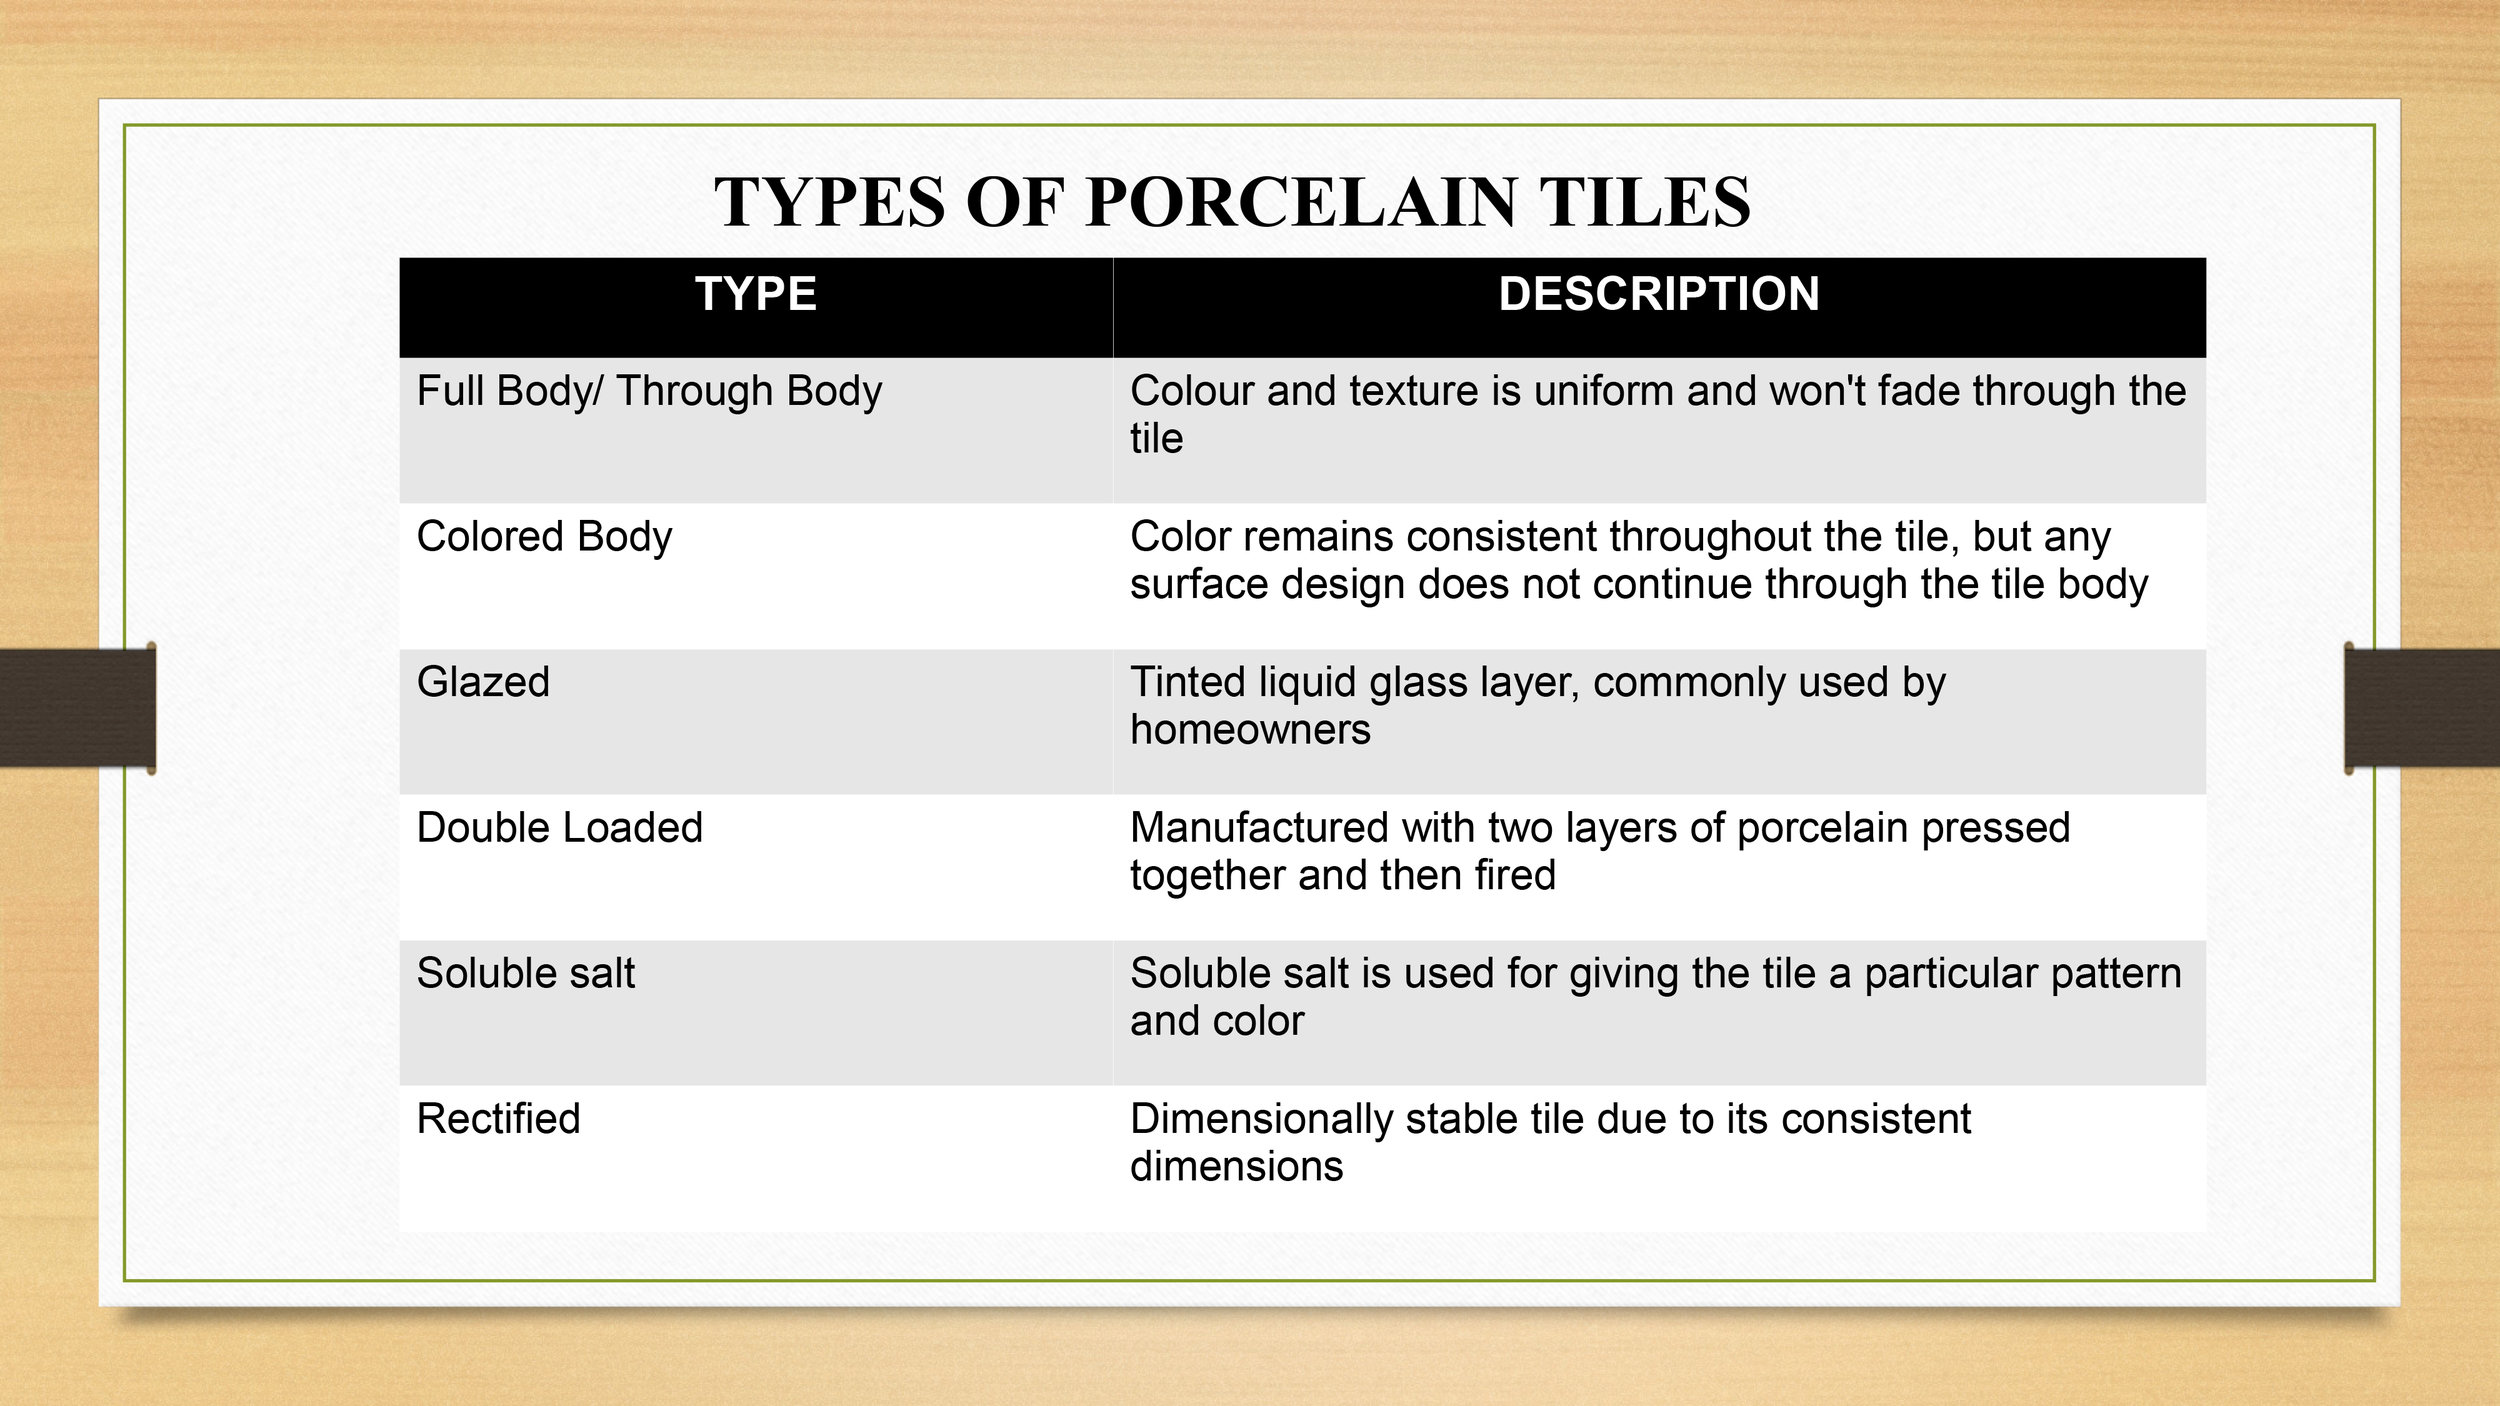 Types of Porcelain Tiles.jpg